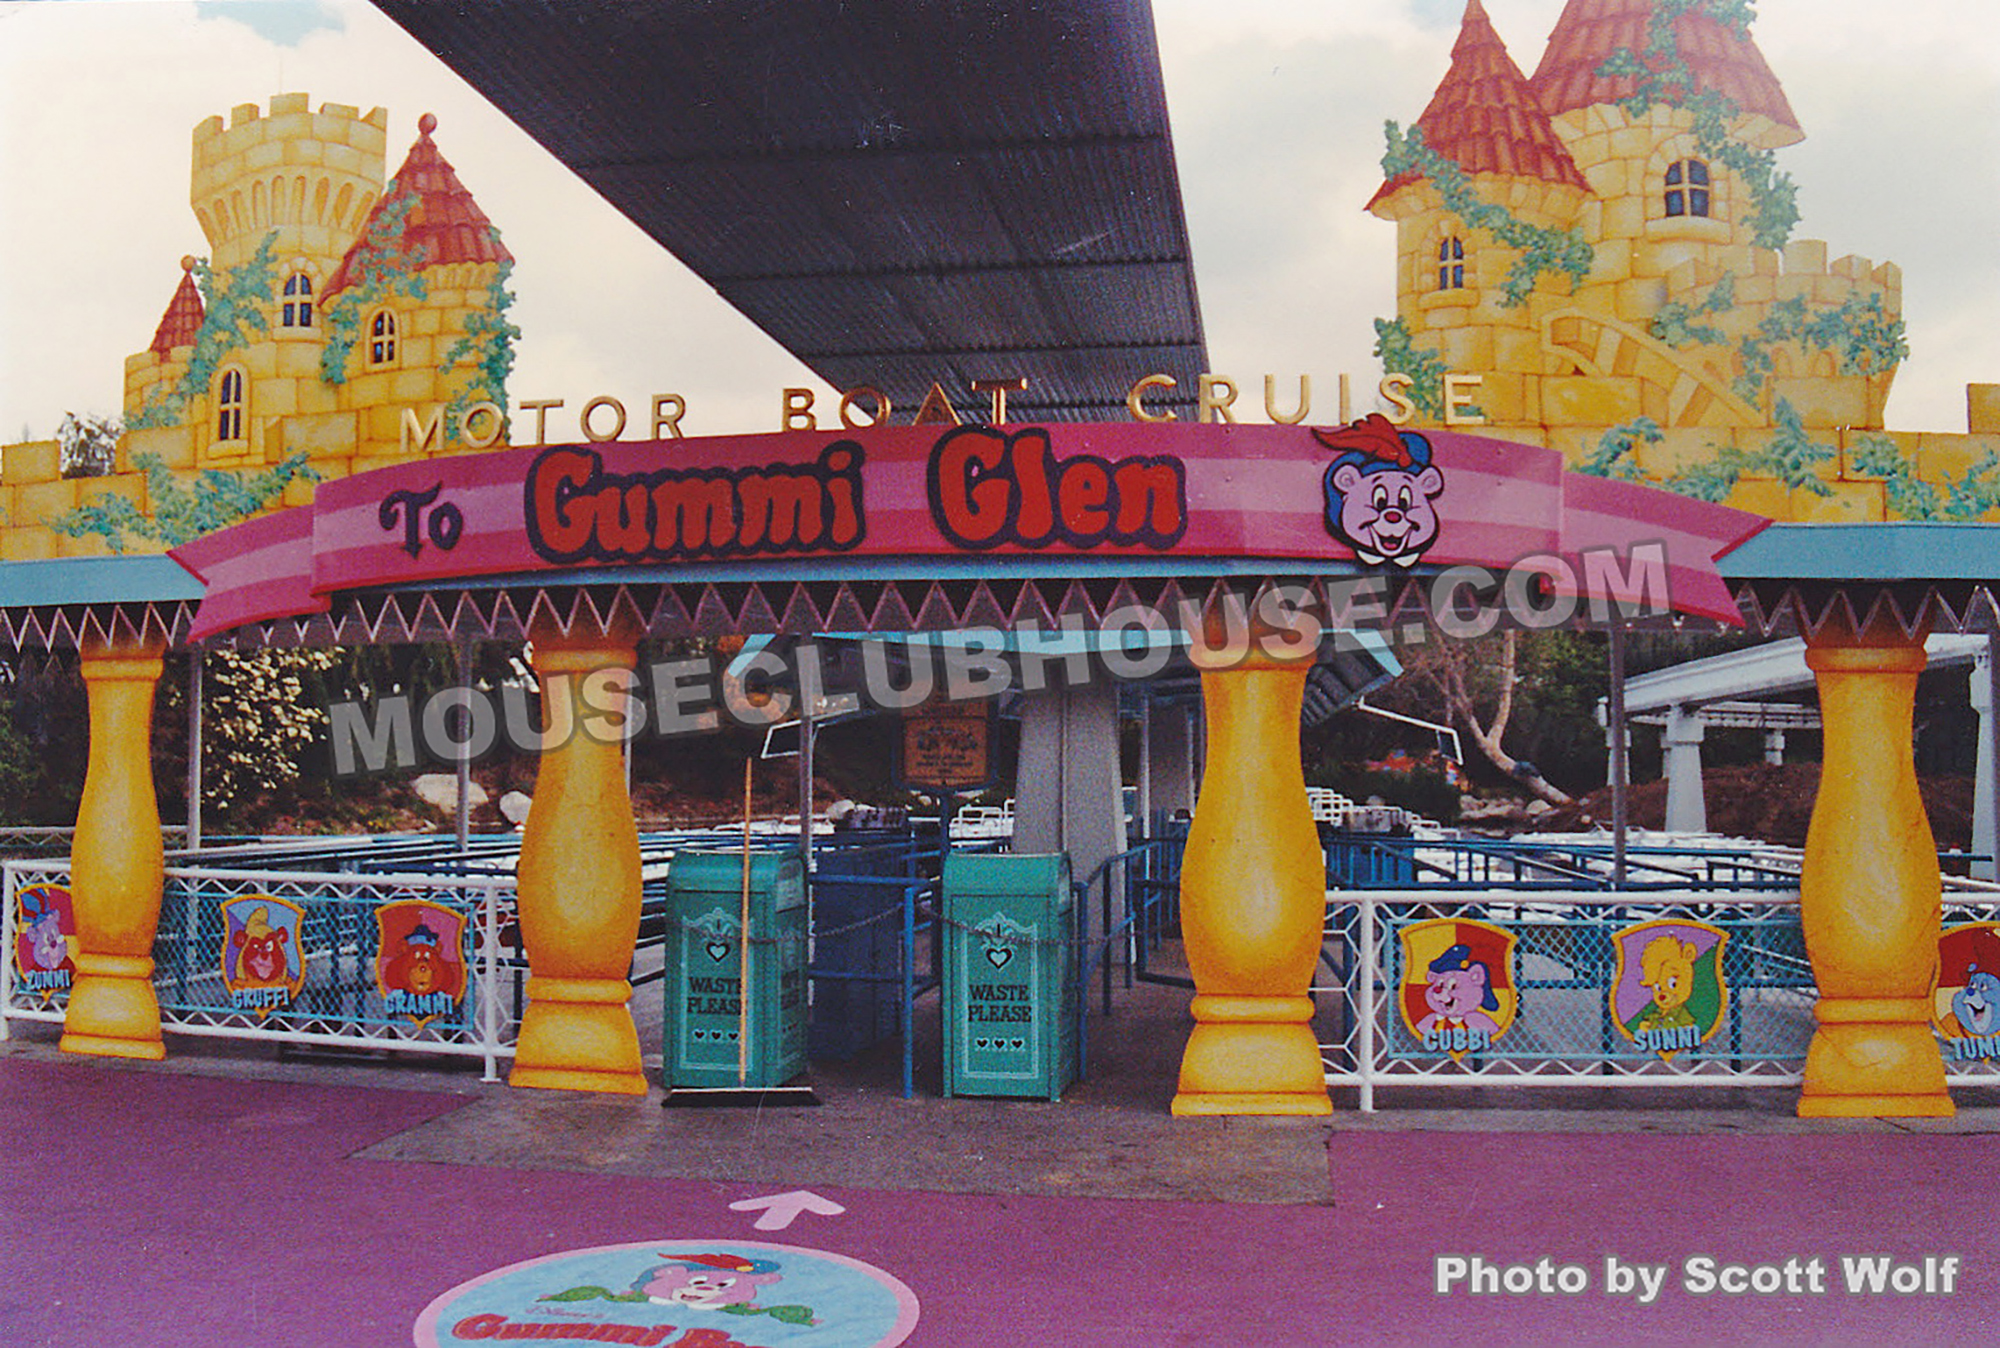 The Disneyland Motor Boat Cruise attraction was transformed into Motor Boat Cruise to Gummi Glen during the Disney Afternoon Live in 1991